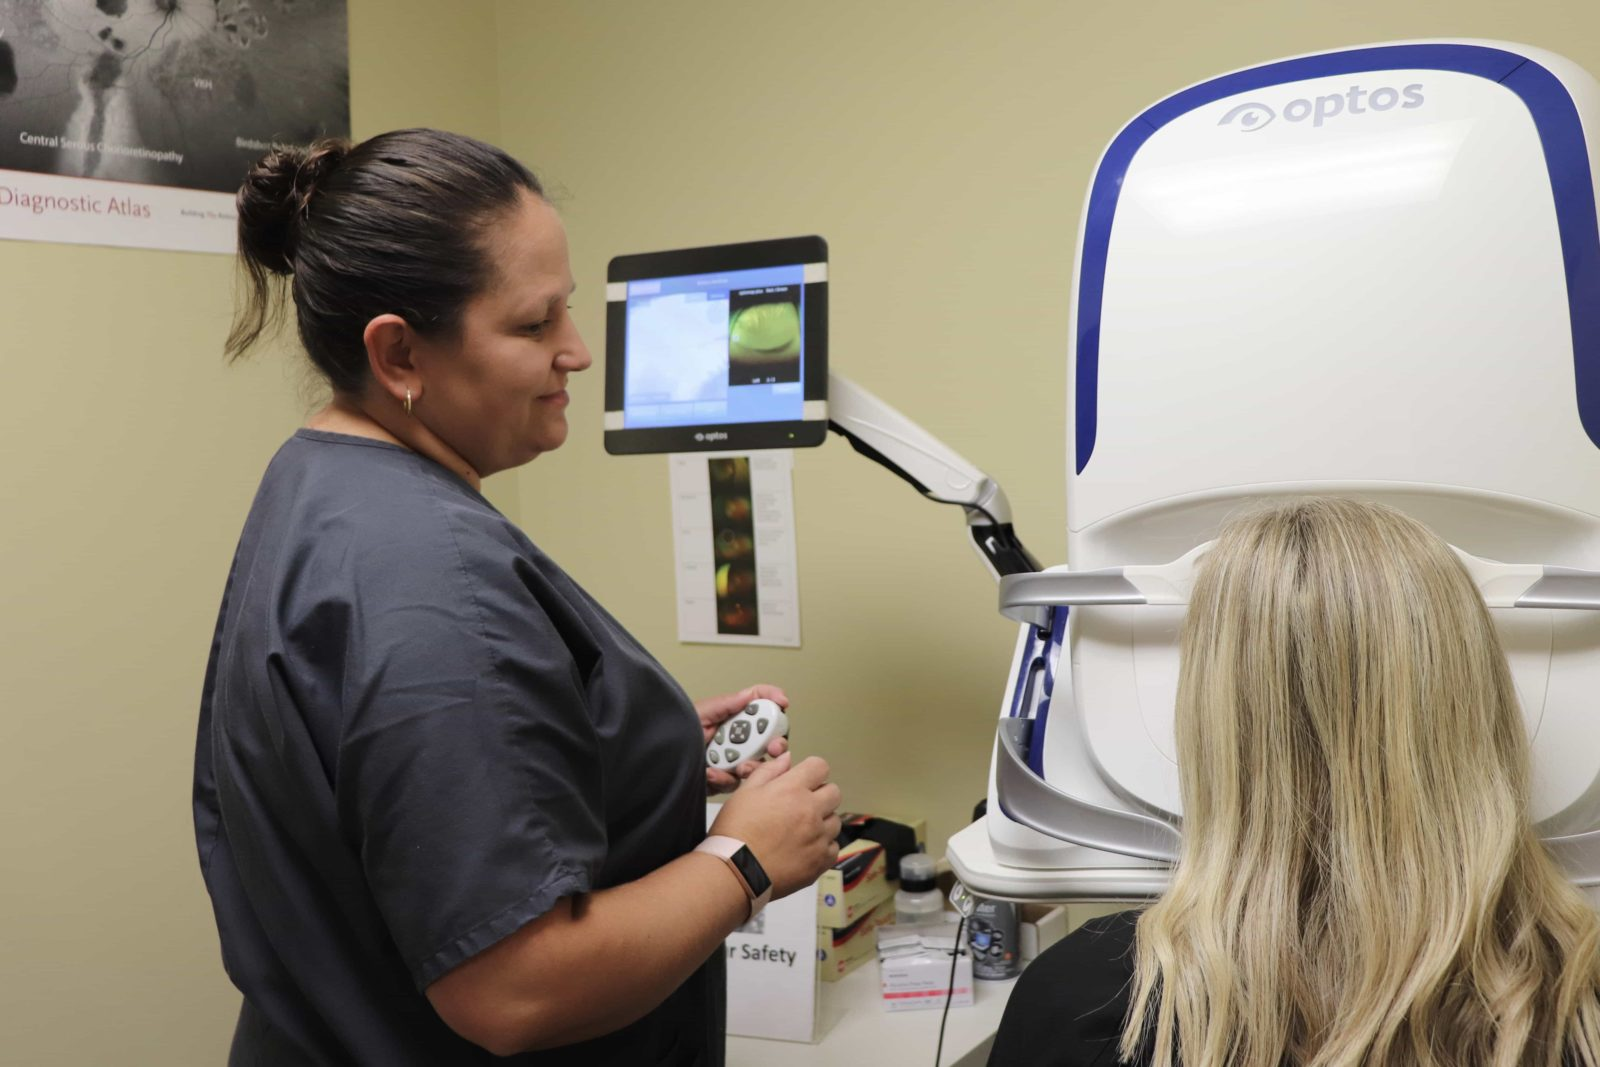 Staff member examining a patient via Optos machine